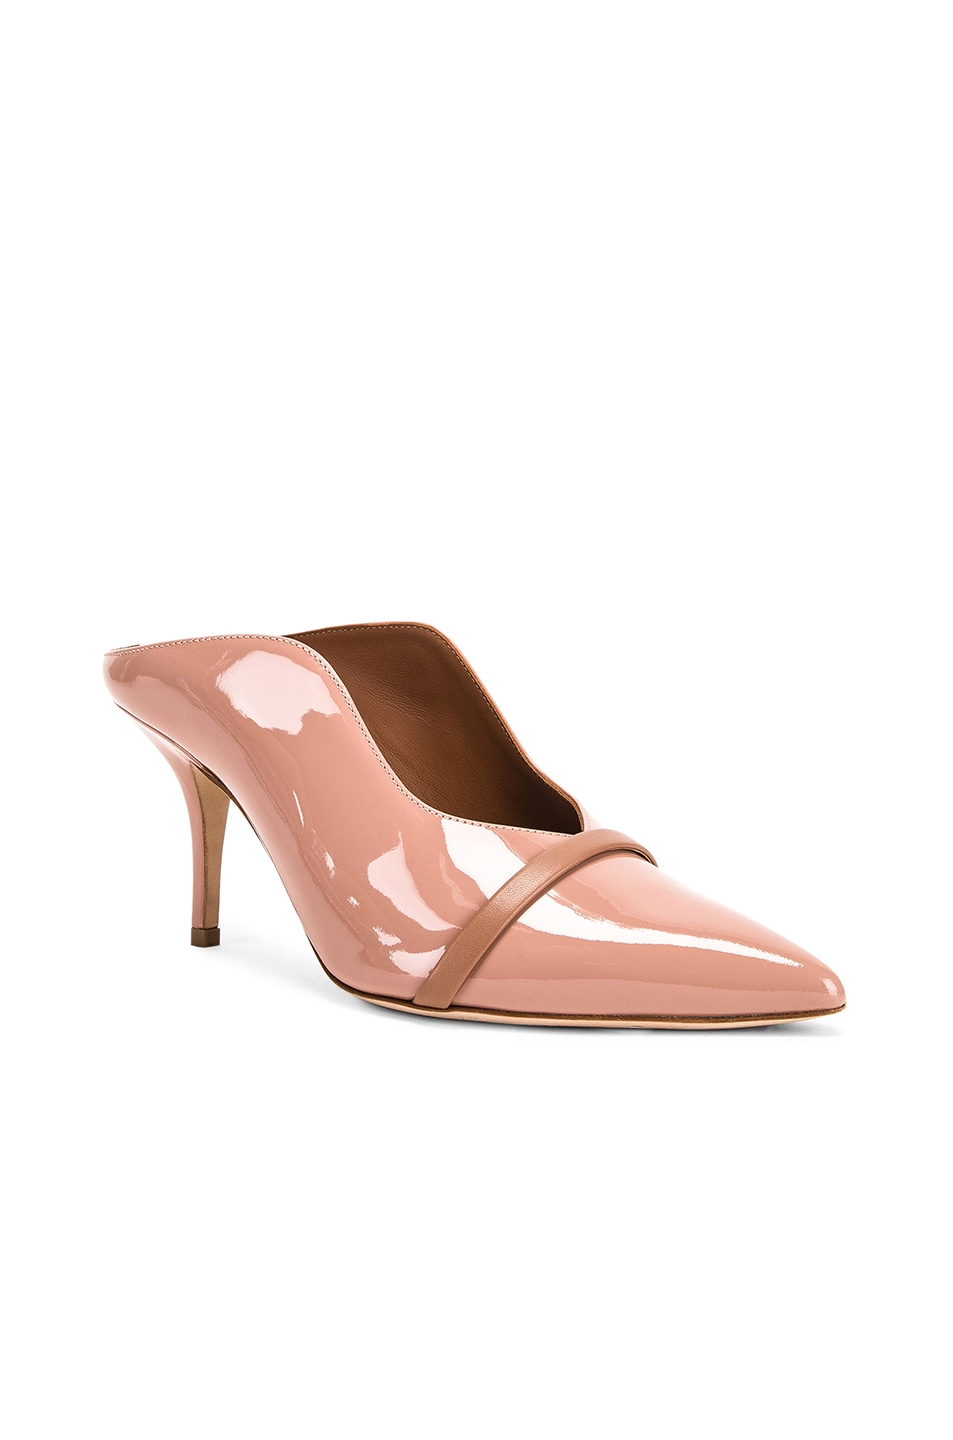 Image 2 of Malone Souliers Constance MS 70 Heel in Nude